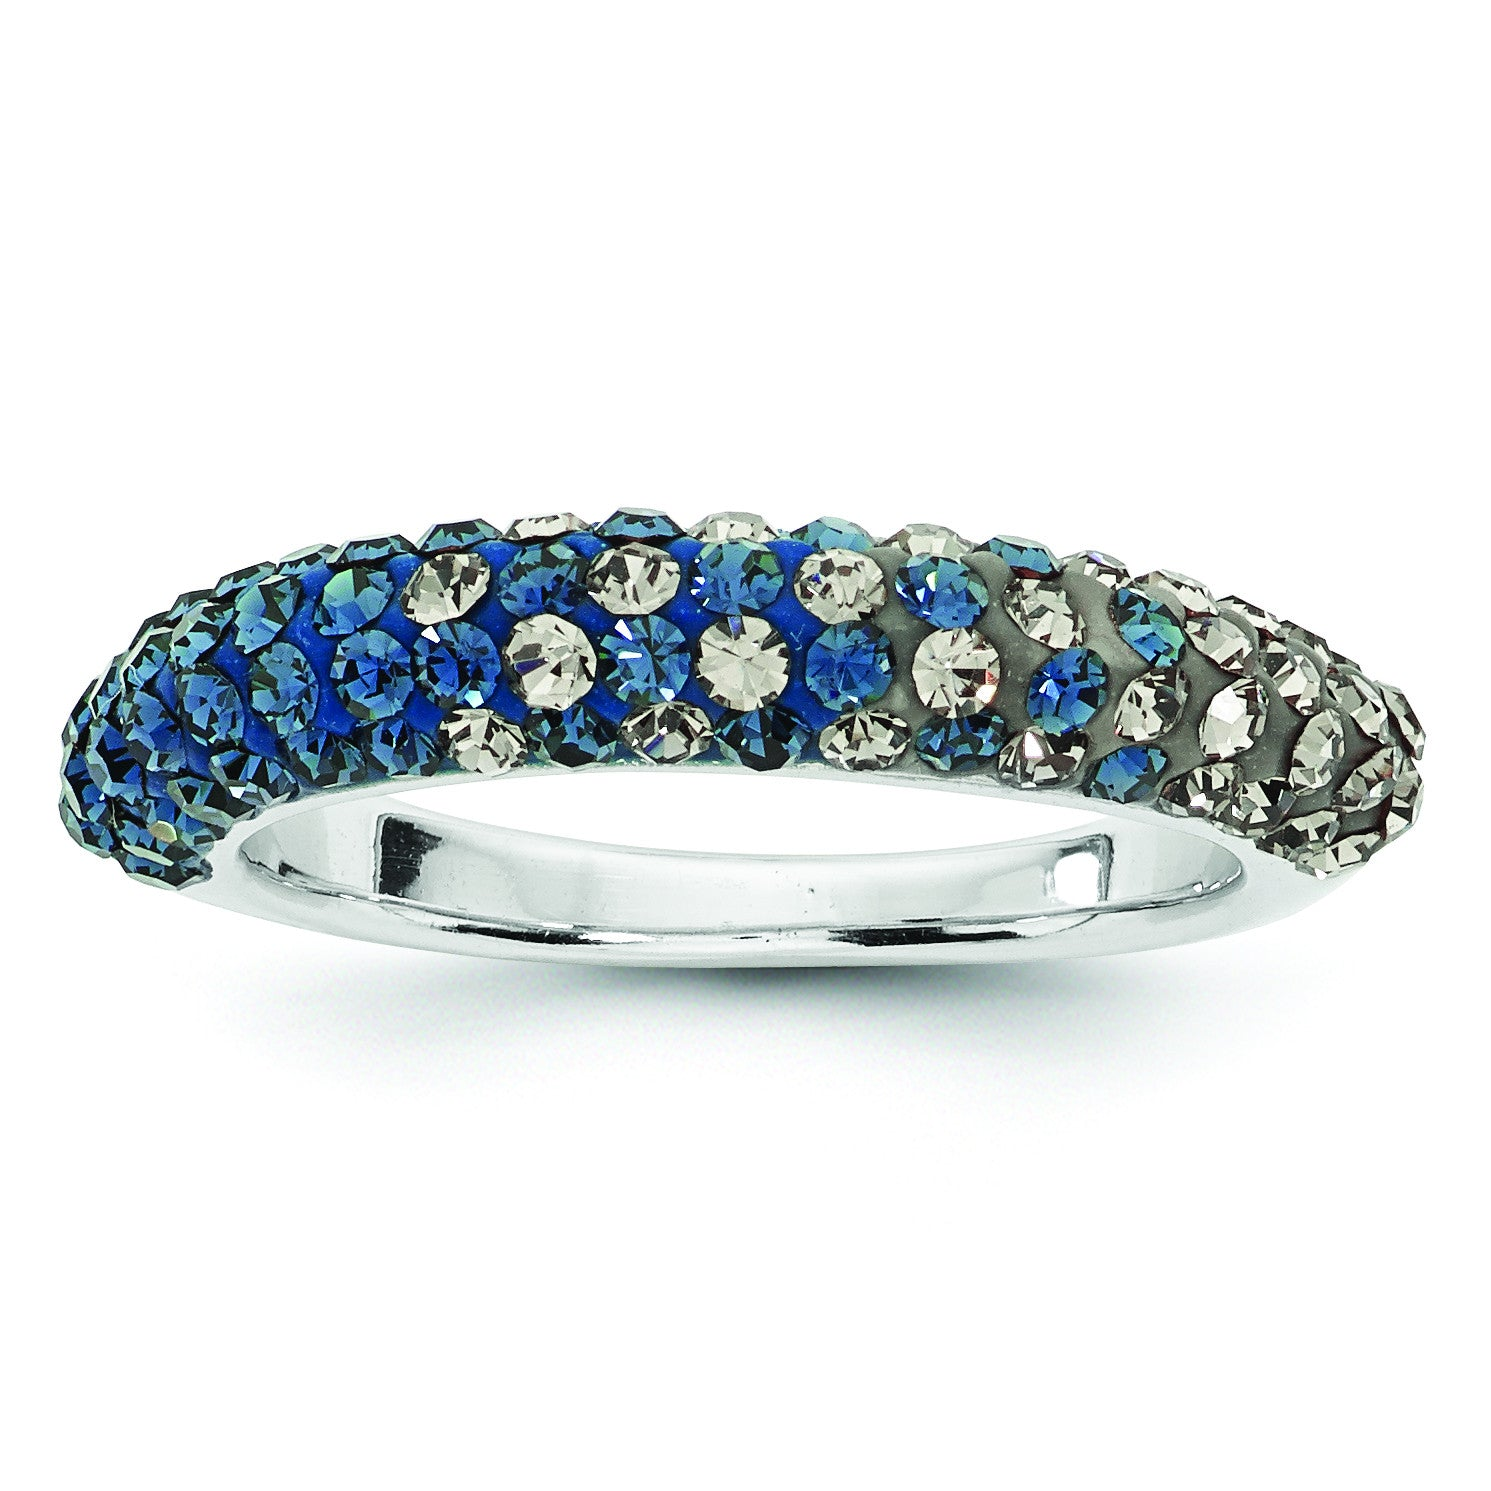 Swarovski Elements Georgetown U Domed Ring CR0028 - shirin-diamonds